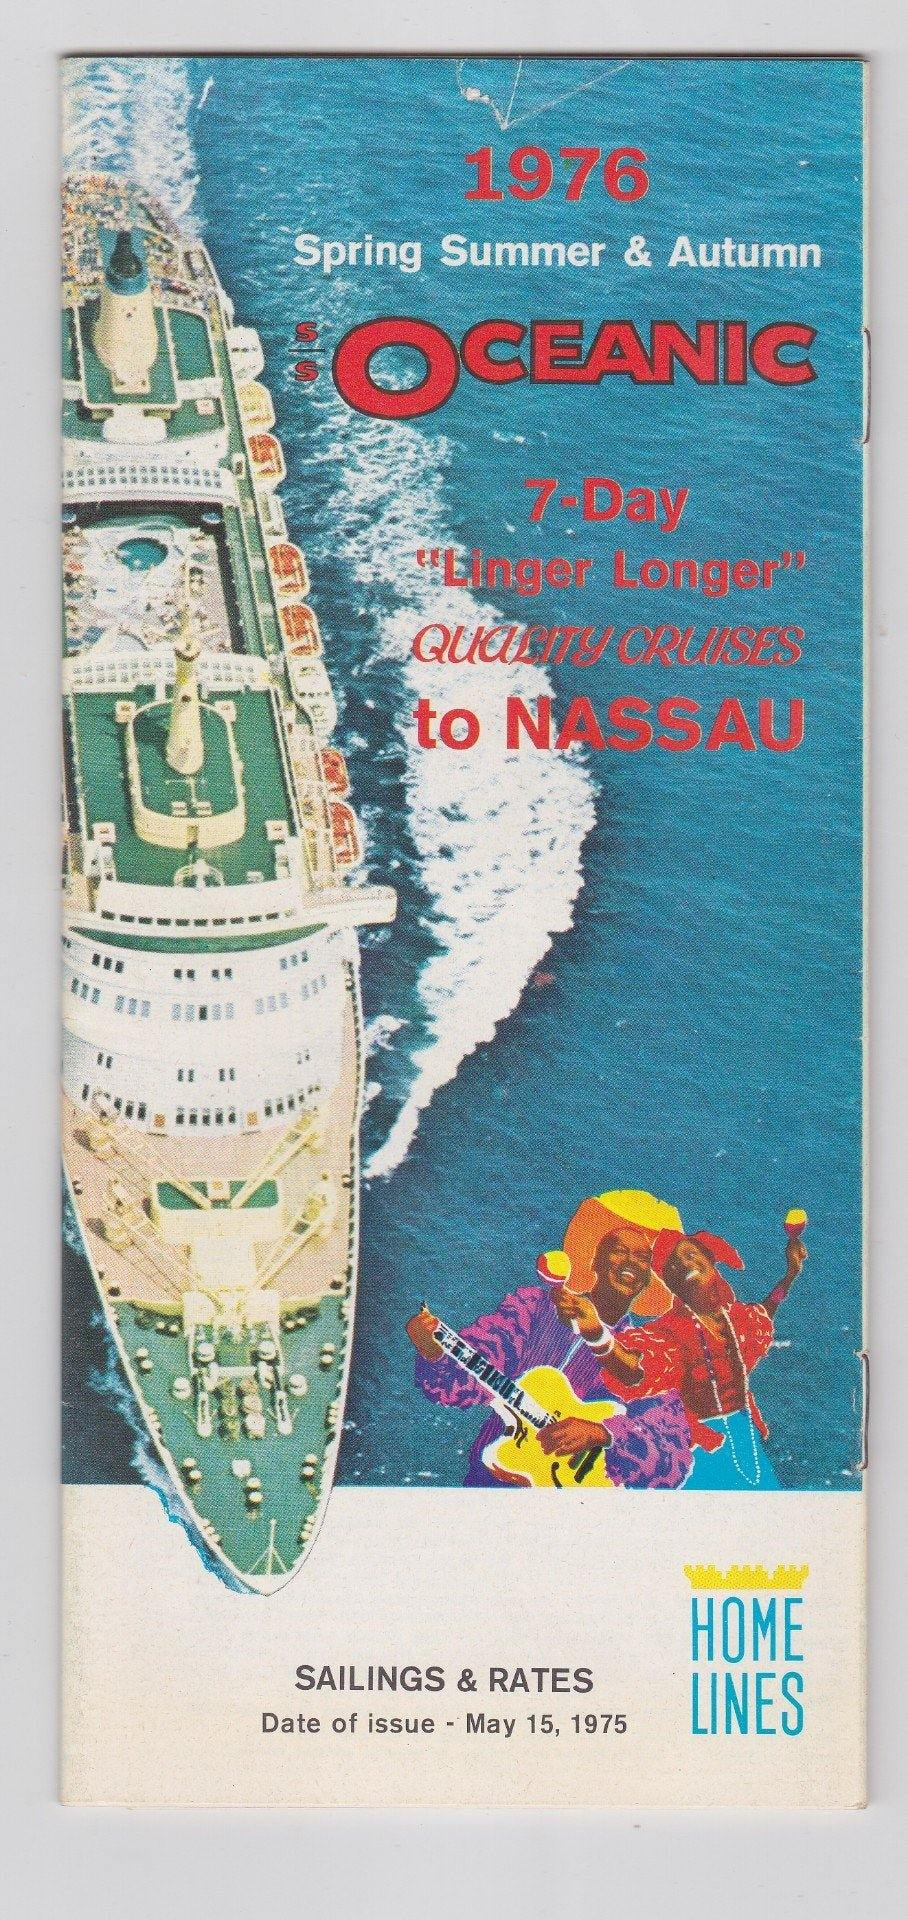 Home Lines ss Oceanic 1976 Nassau Cruises Brochure